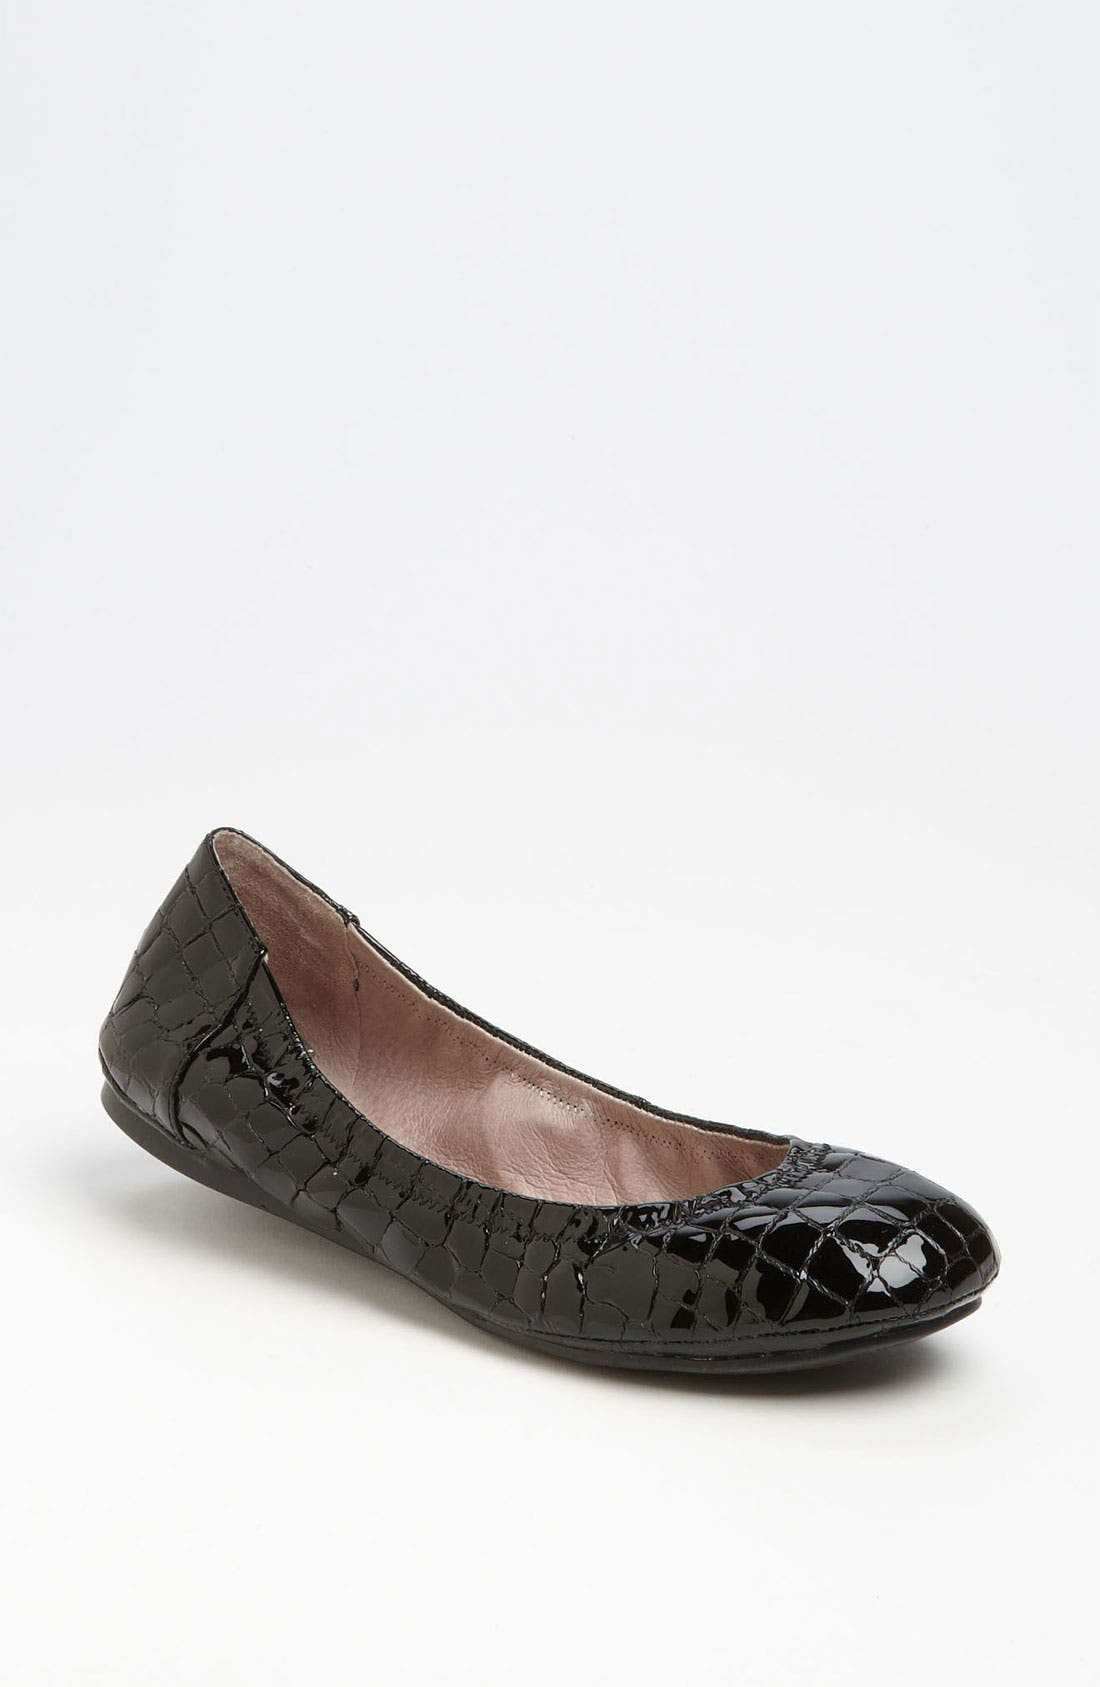 Alternate Image 1 Selected - Vince Camuto 'Ellen' Flat